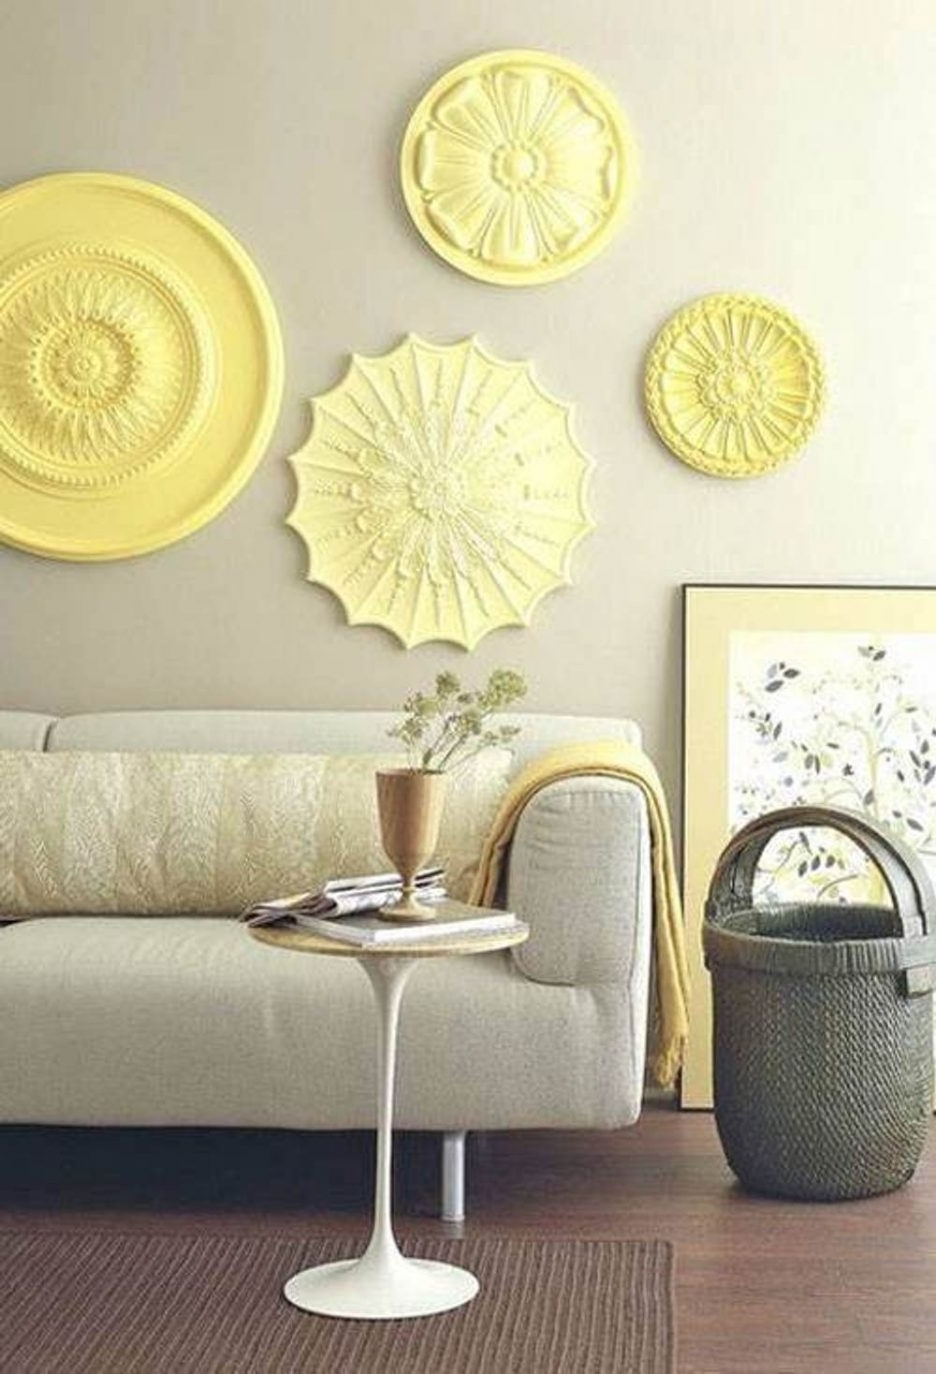 15 Best Ideas of Fabric Circle Wall Art